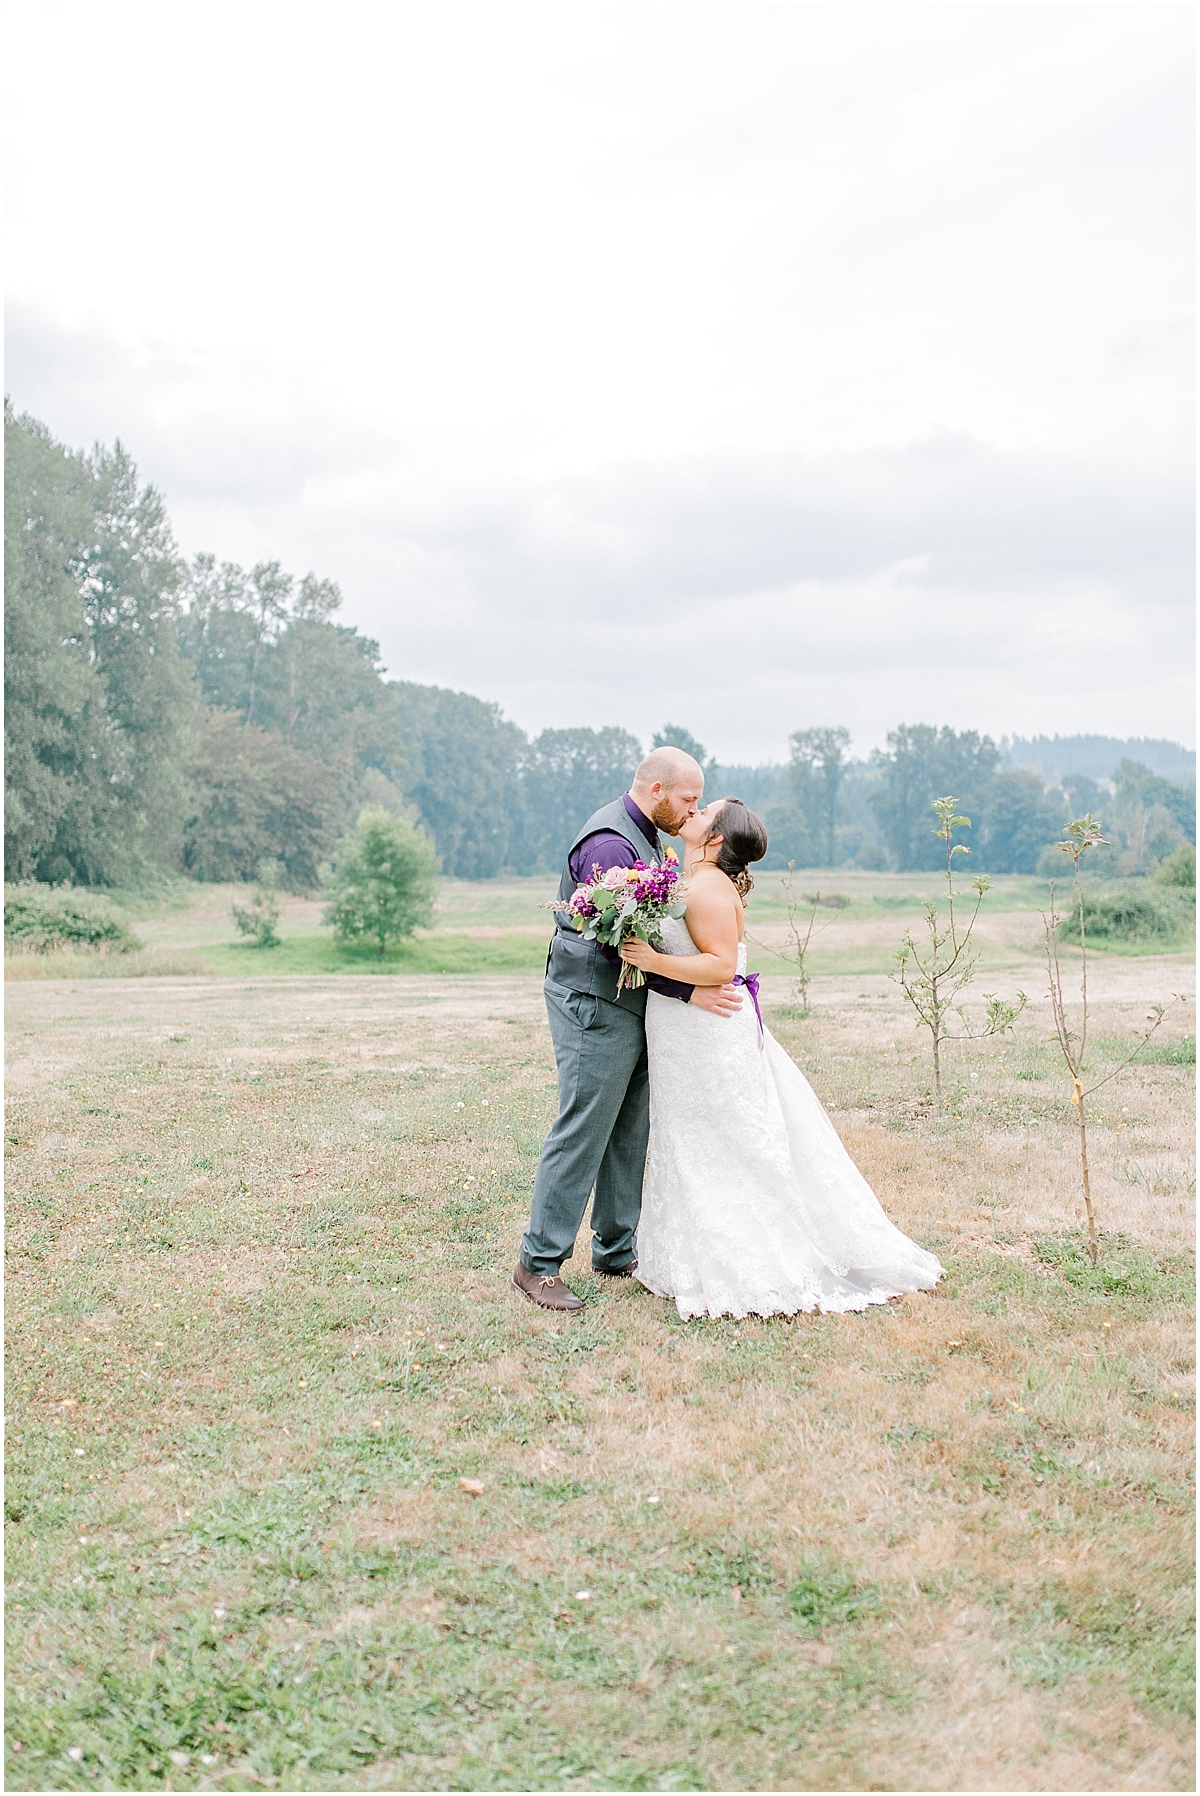 Sunflower themed wedding with purple accents, Emma Rose Company Seattle Wedding Photographer, Light and Airy photographer Kindred Presets Wedding Details PNW_0116.jpg